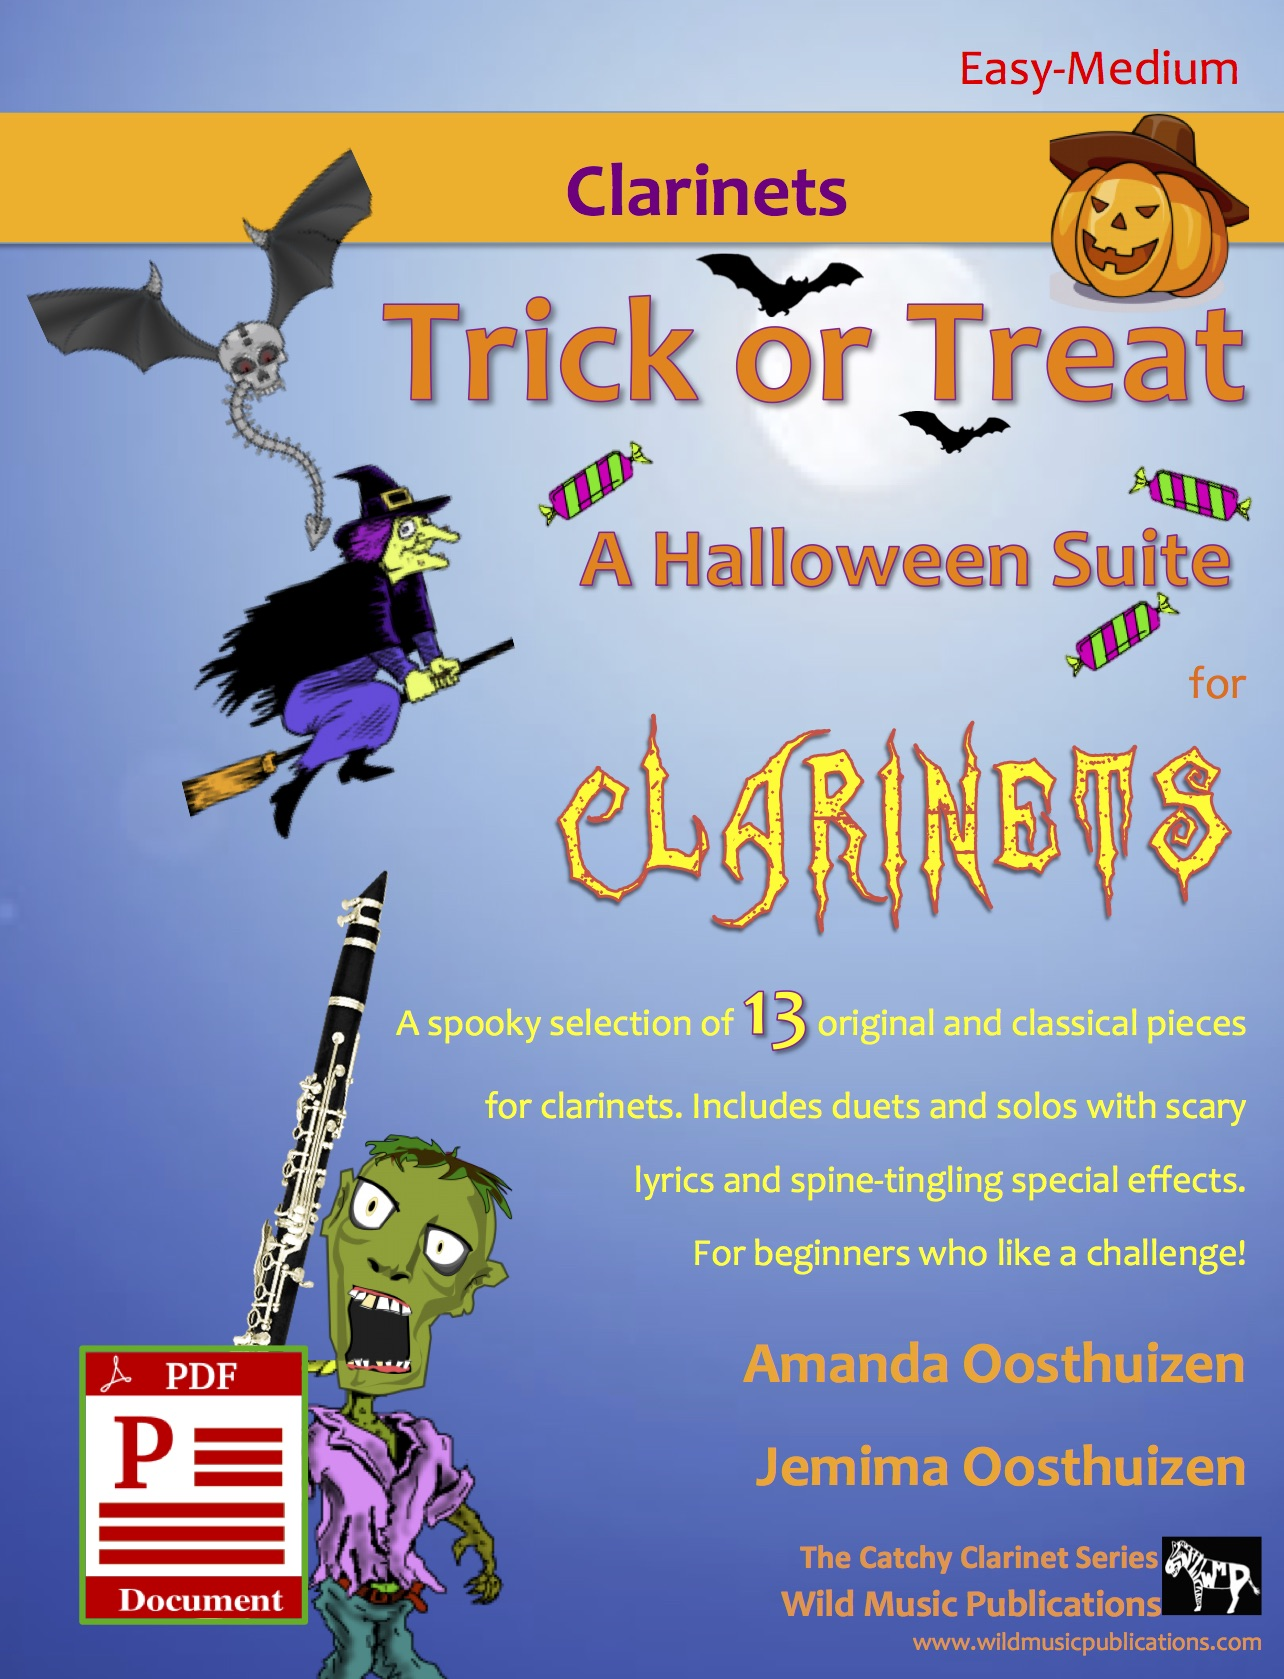 Trick or Treat - A Halloween Suite for Clarinets Download